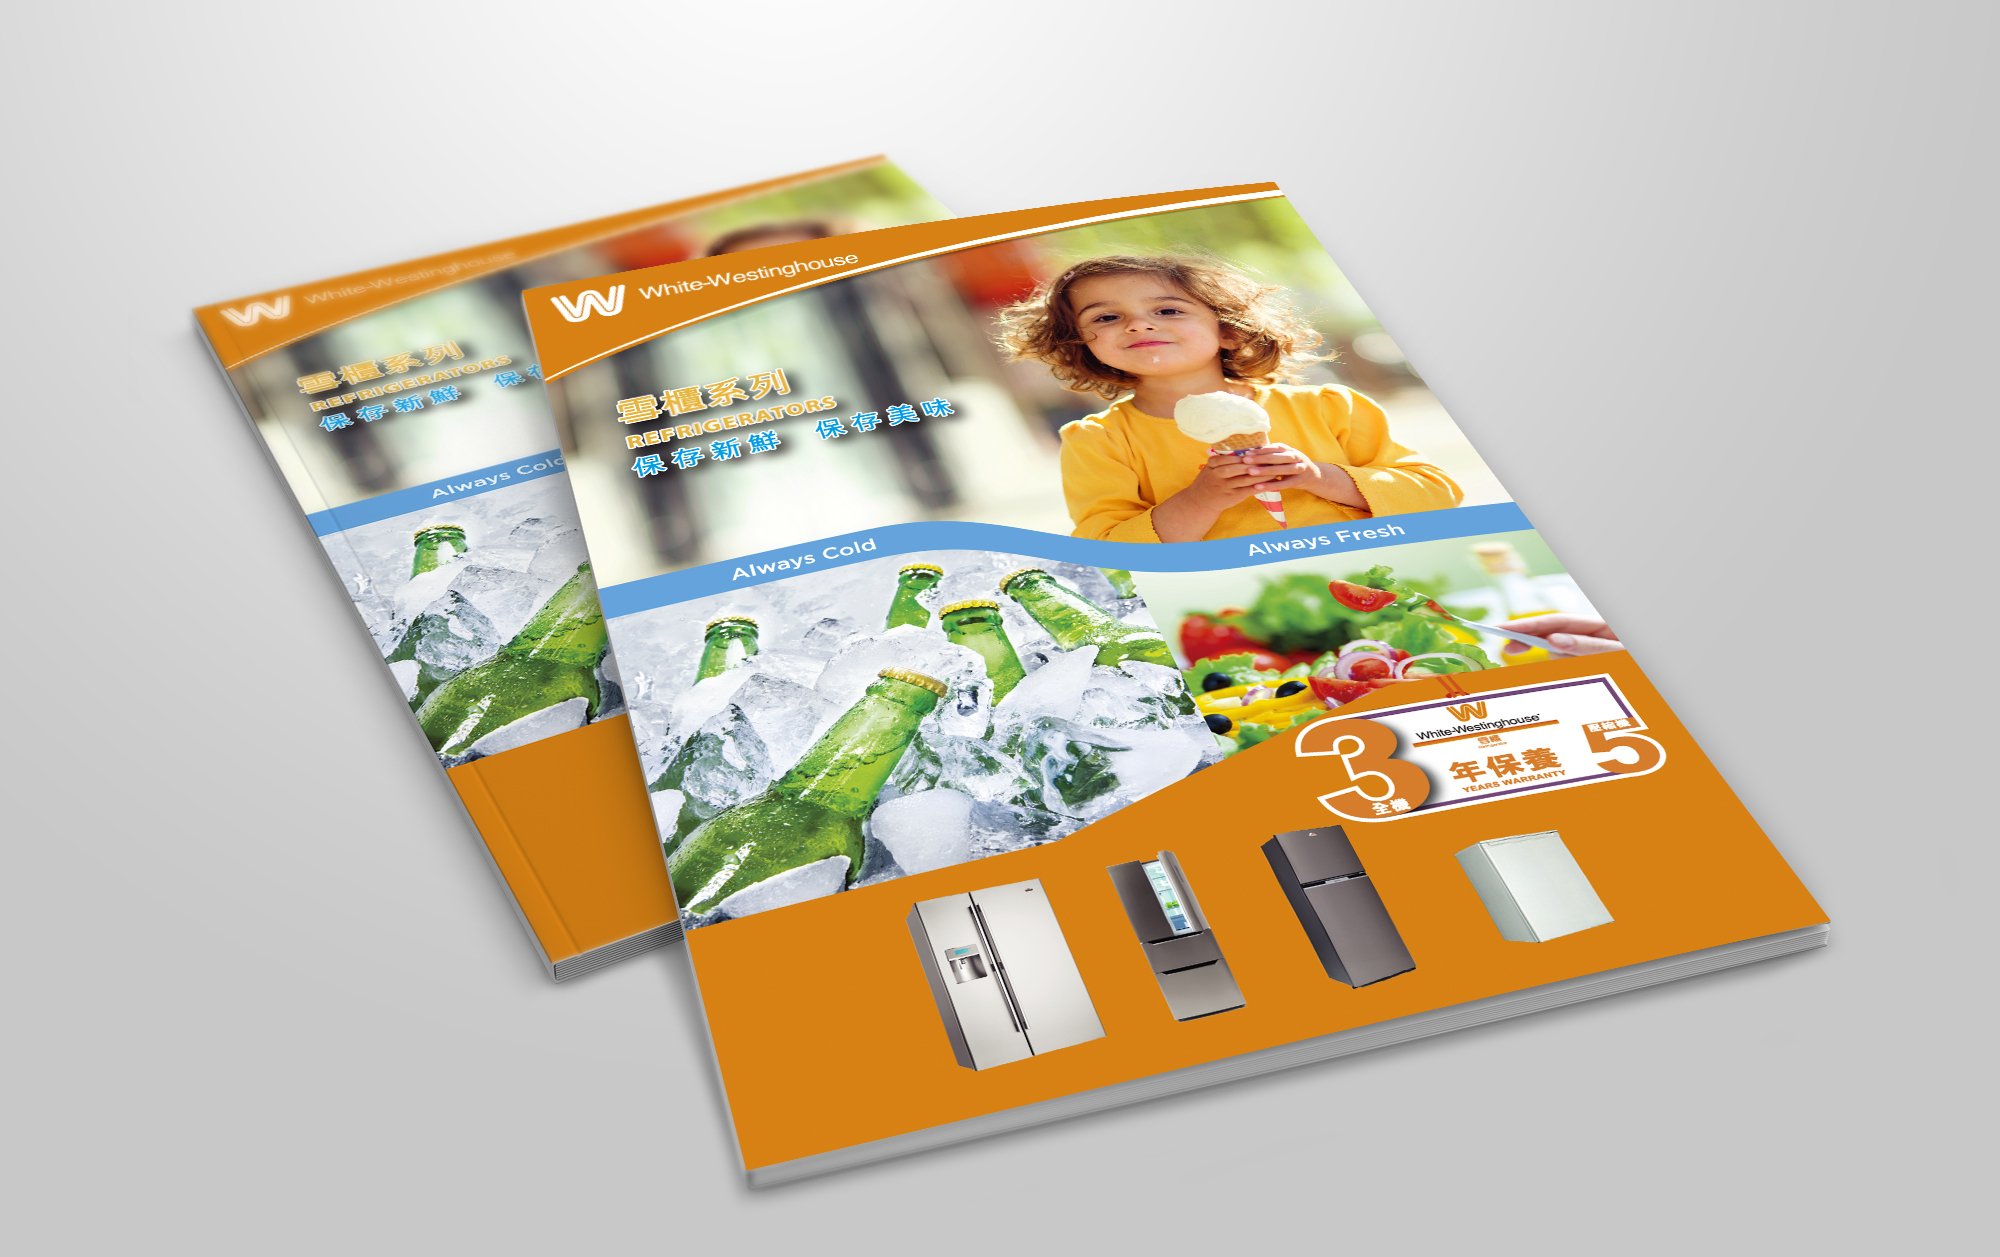 Design-Advertising-Graphic-branding-online-marketing-illustration-poster-Electrical product01